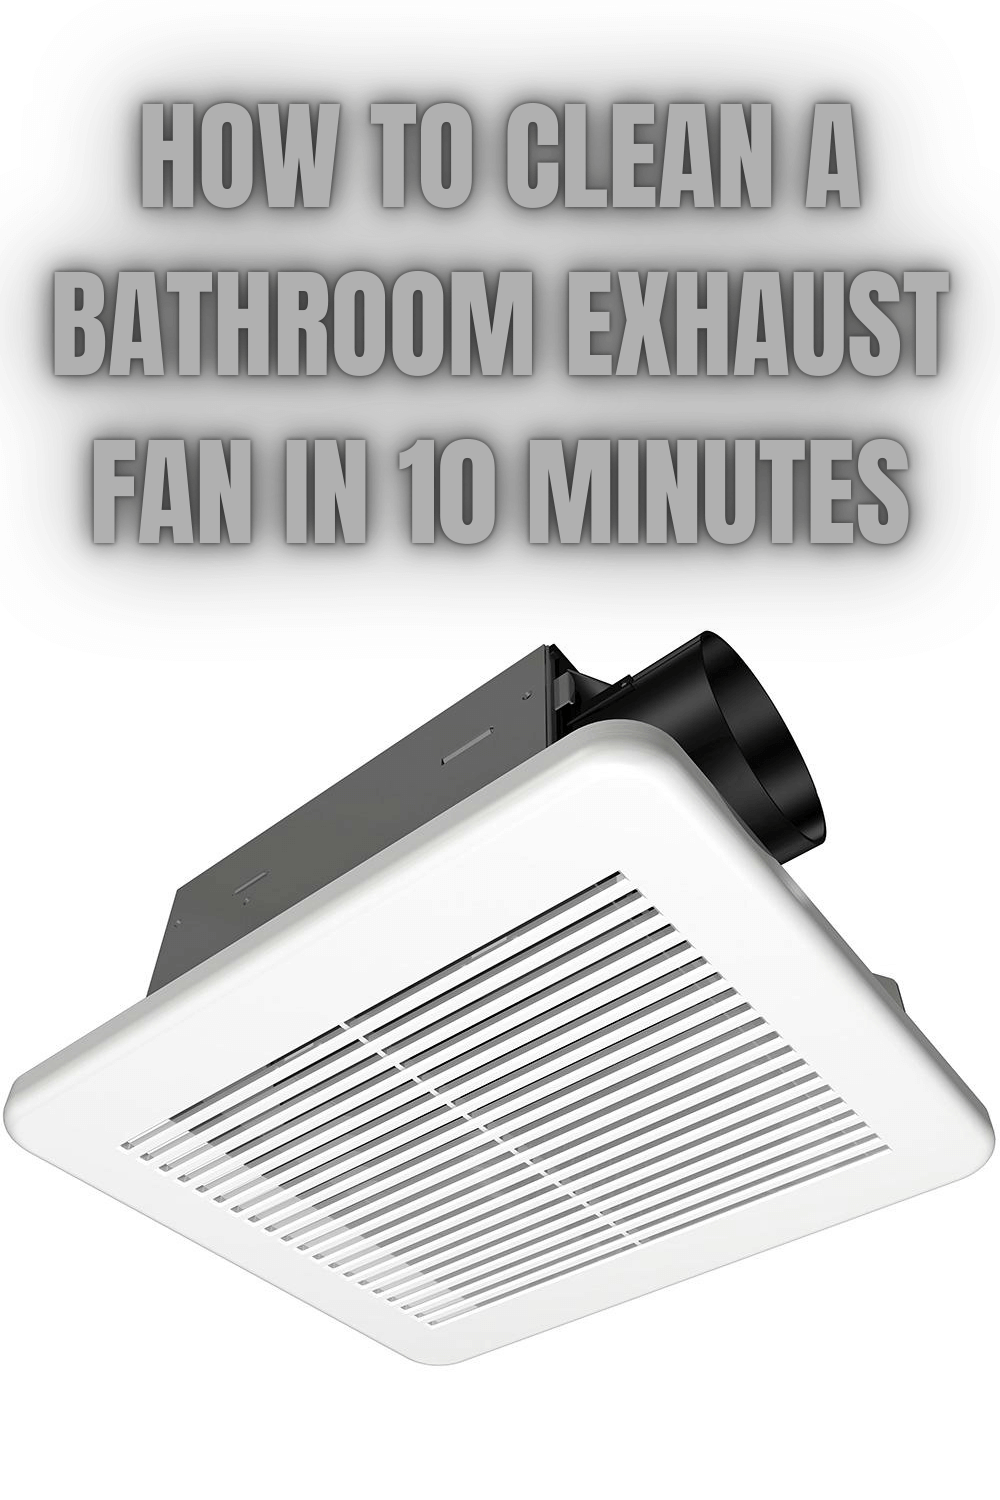 HOW TO CLEAN A BATHROOM EXHAUST FAN IN 10 MINUTES